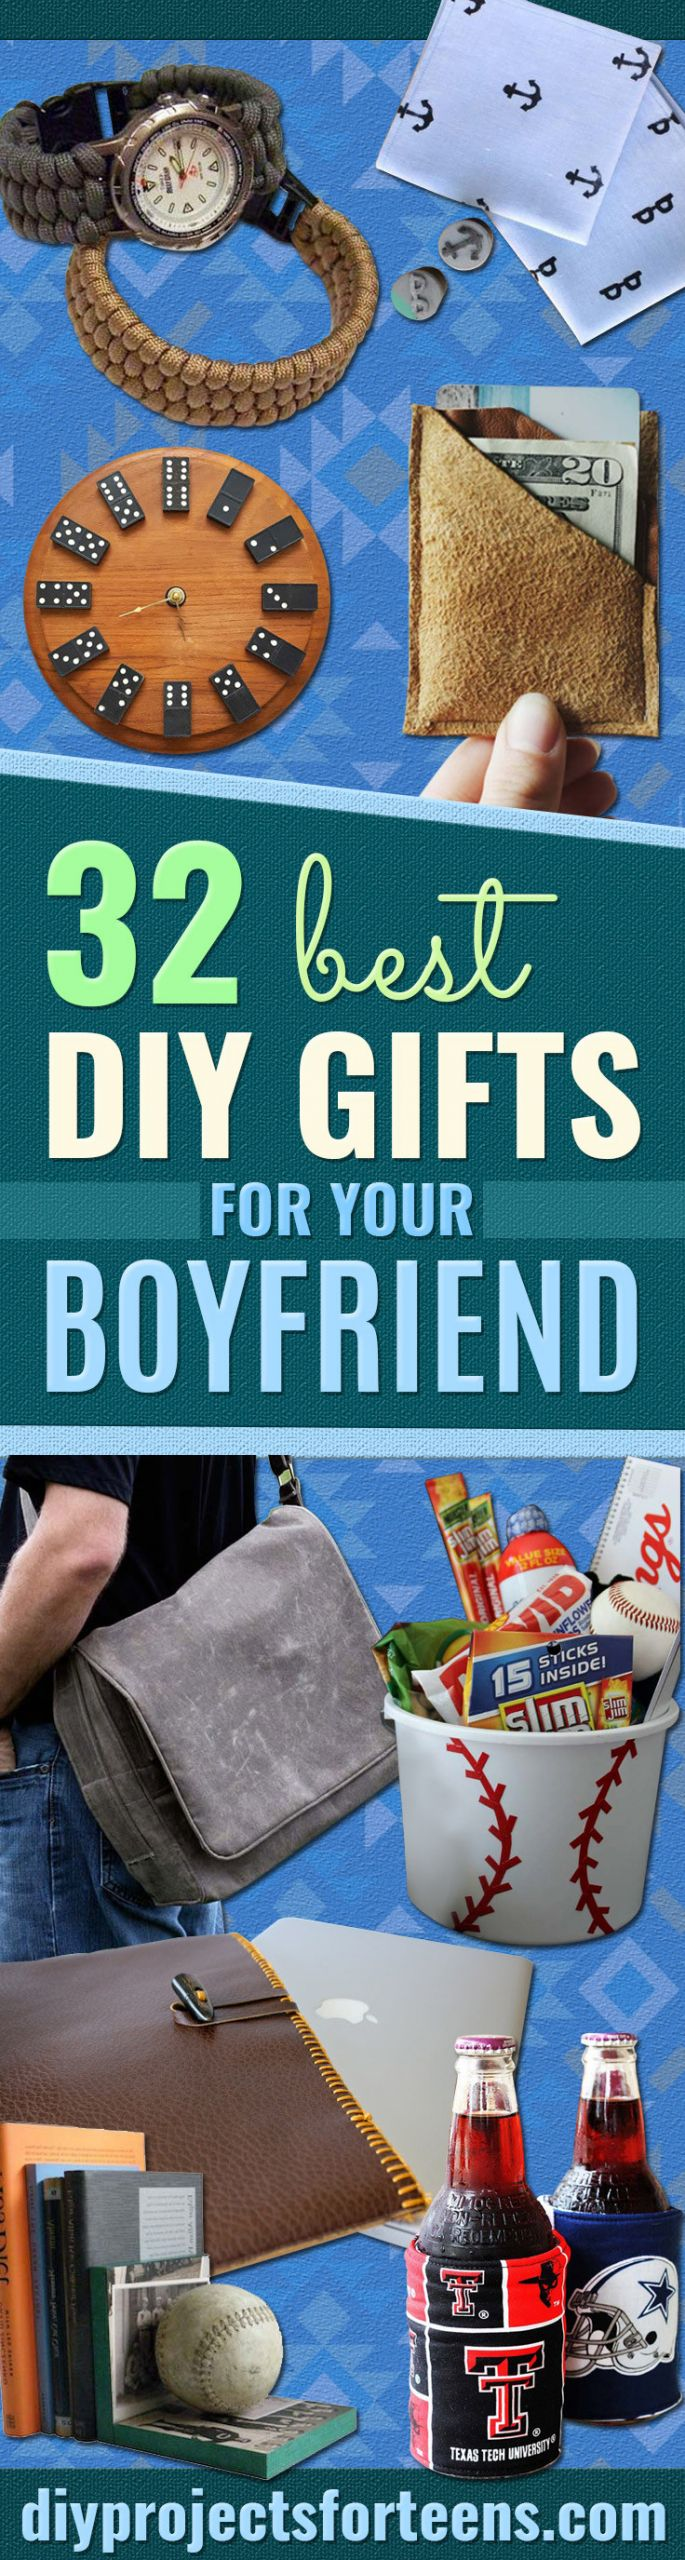 Gift Ideas For Teen Boyfriend  32 Awesome DIY Gifts for Your Boyfriend DIY Projects for